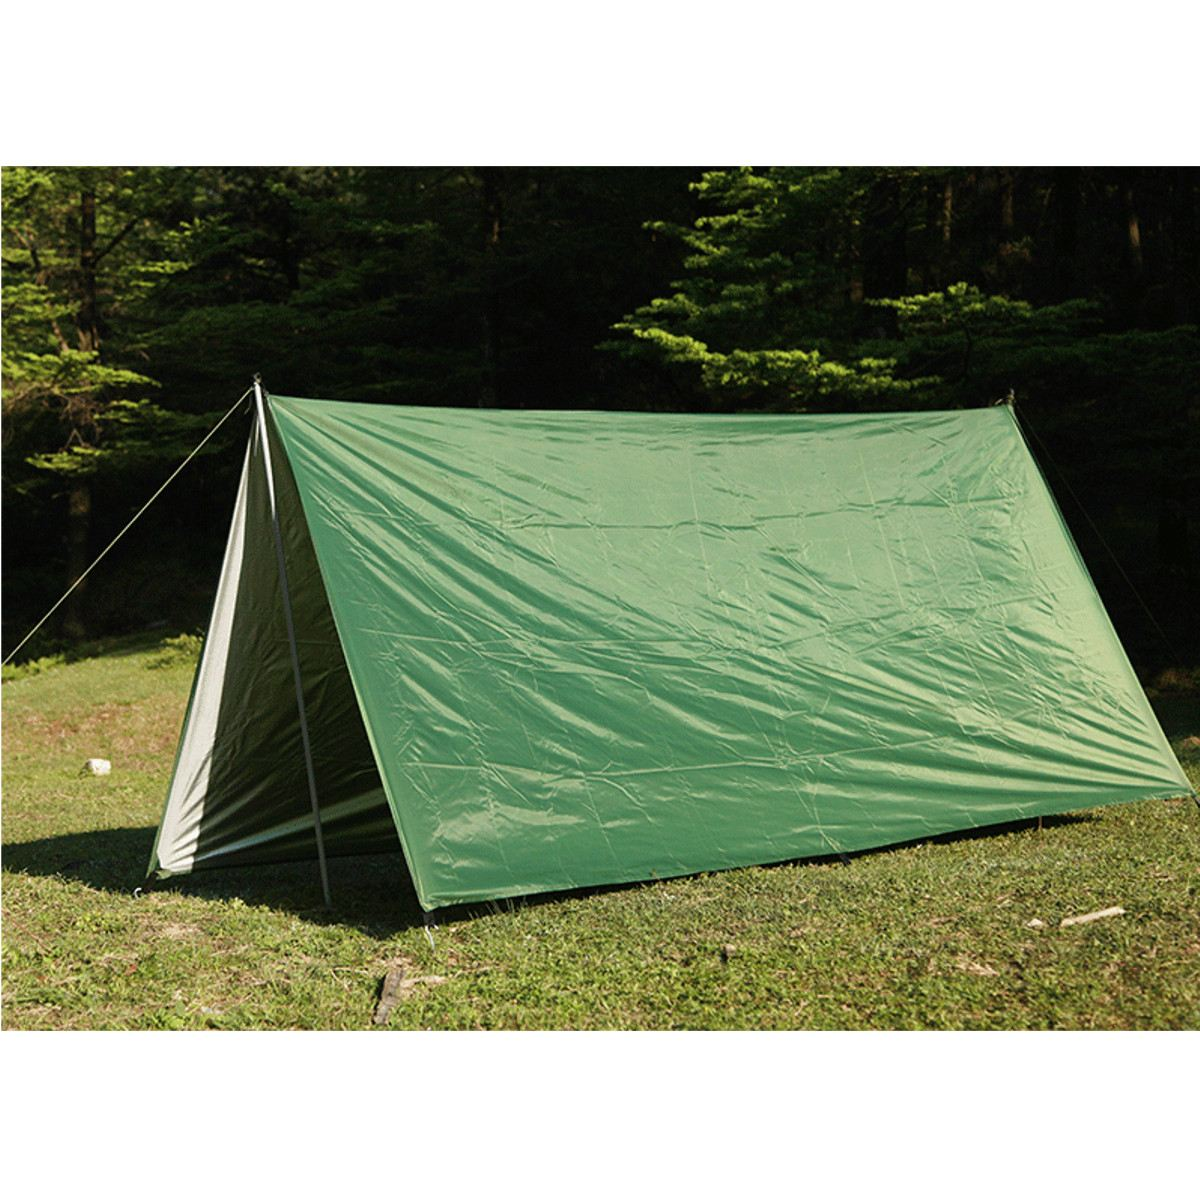 New 3mx3m Waterproof Sun Shelter Tarp Survival Camping Climbing Outdoor Tent Patio Sun Shade Awning Canopy Garden tent Shade outdoor waterproof awning canopy ultralarge sun shading beach tent shade shed camping tent sun shelter garden tent 5 5 2 5meters